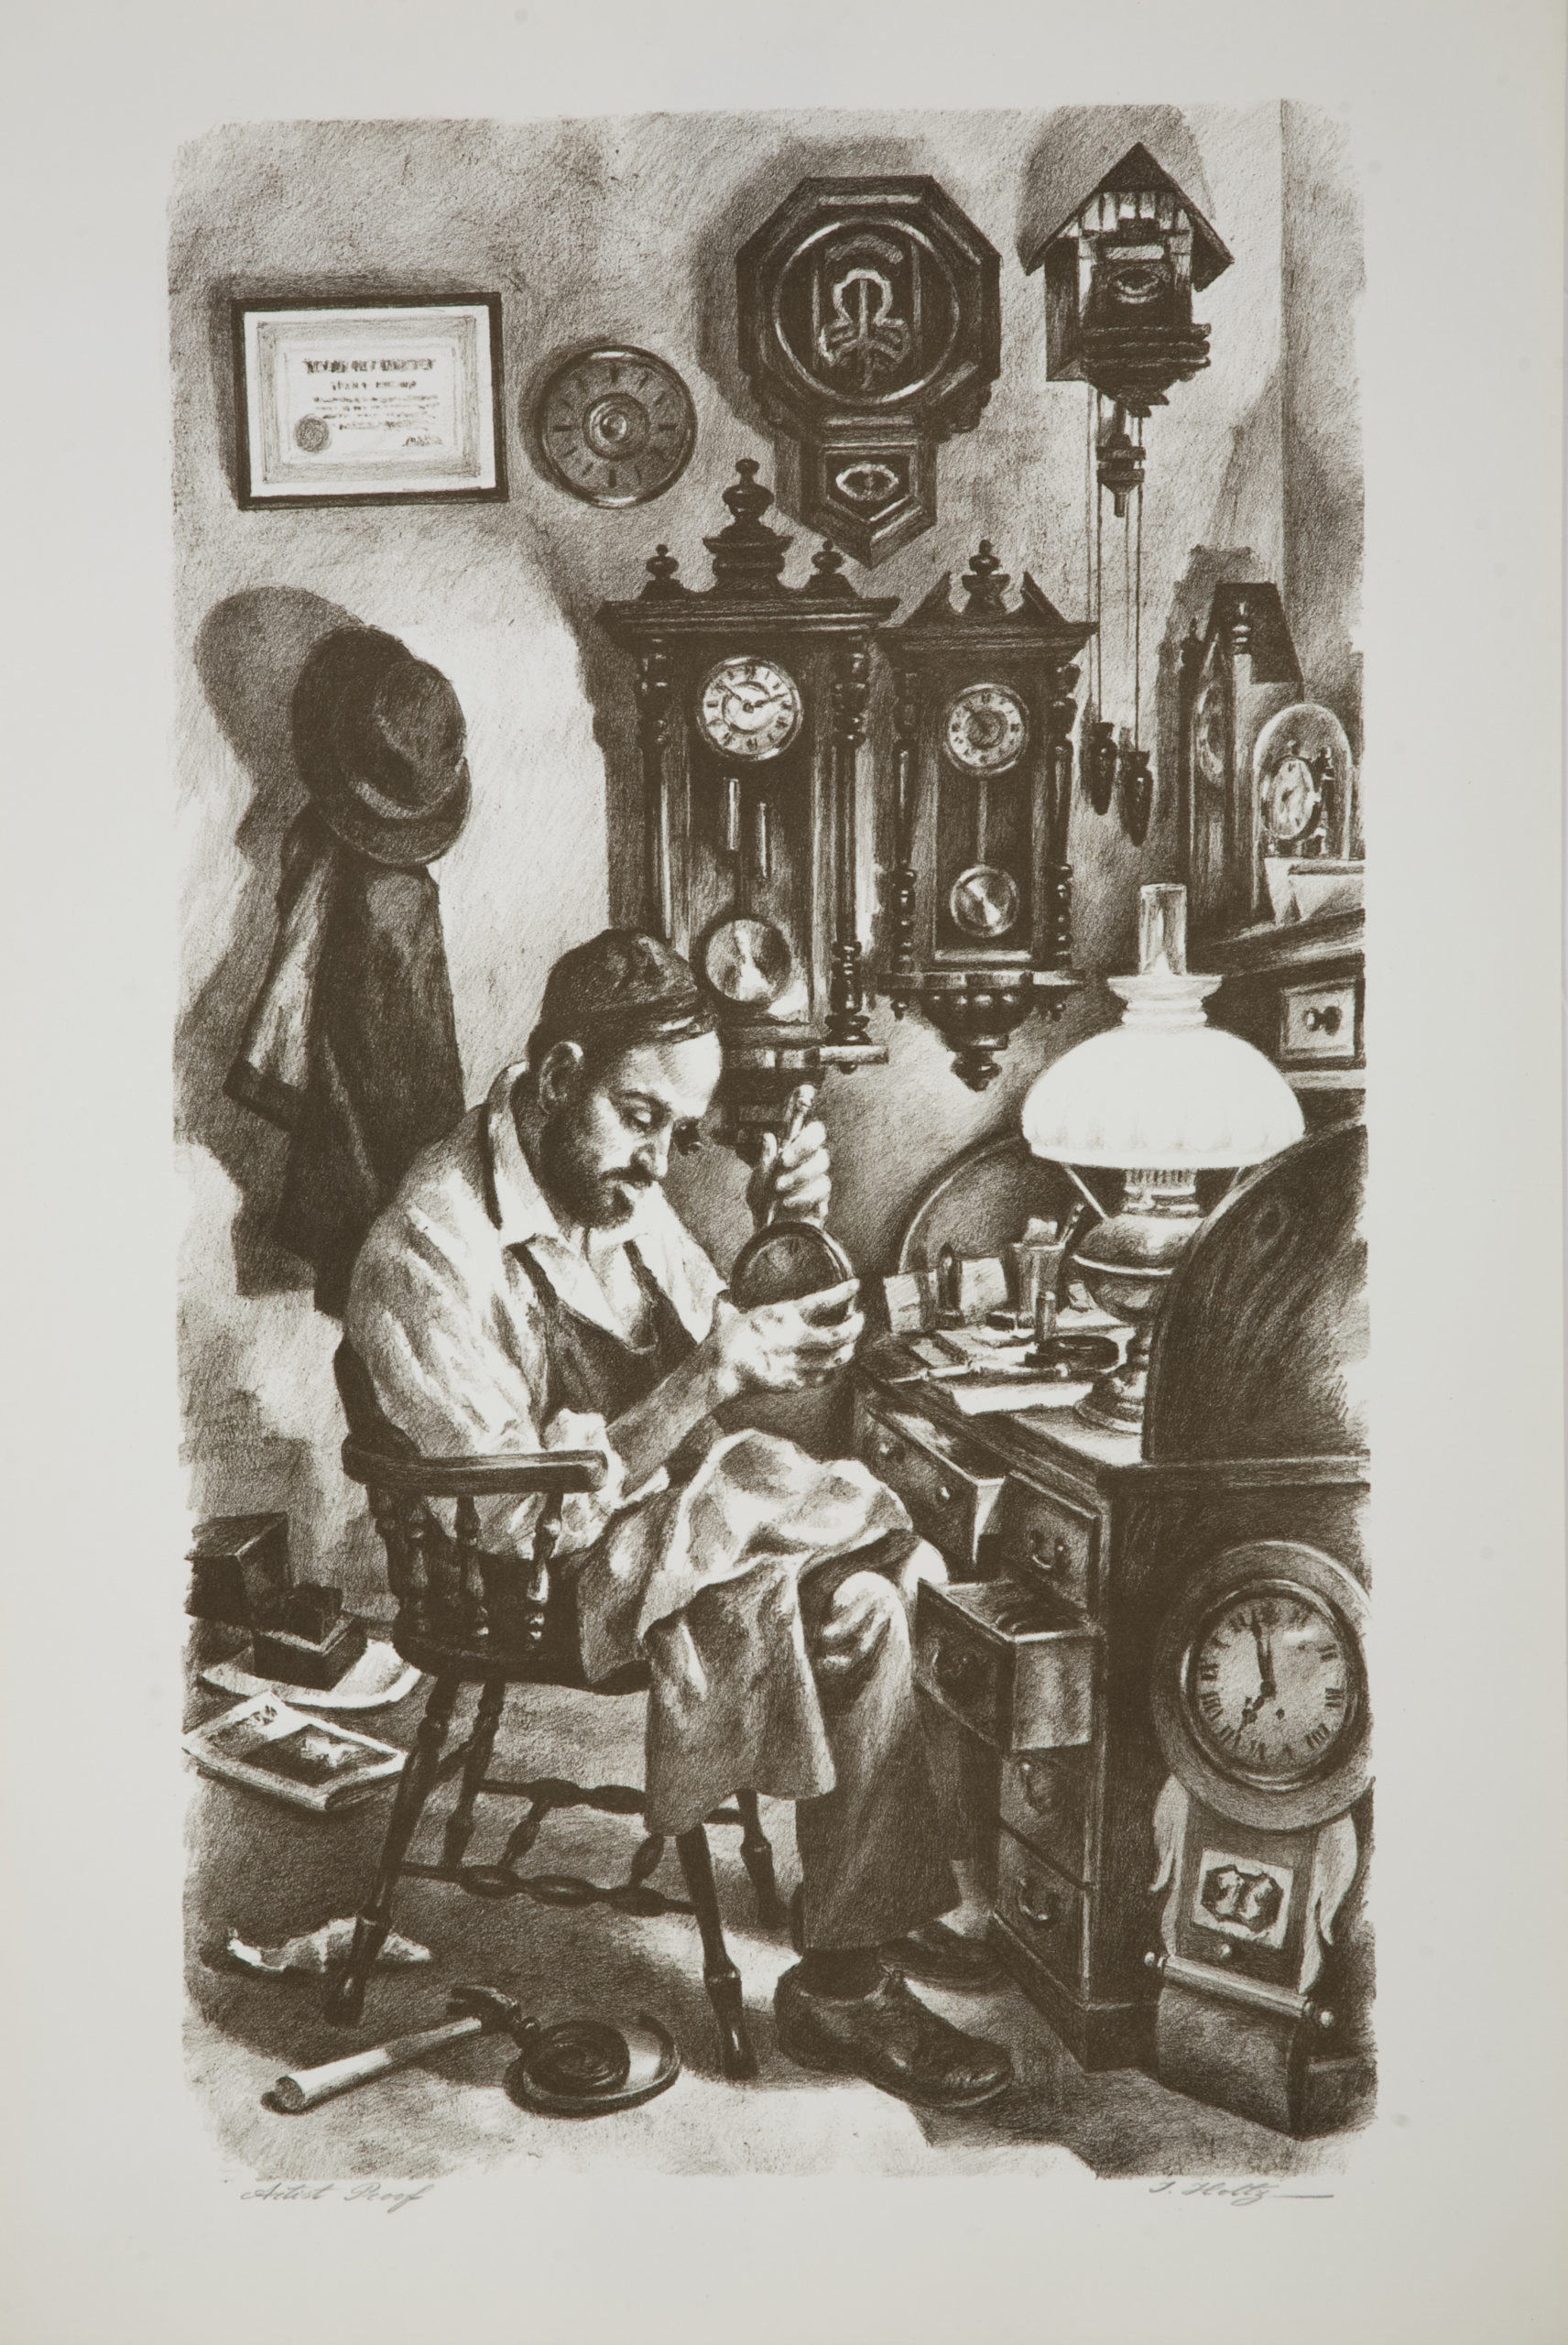 L22B Clockmaker - Black and White - Lithograph - 20 x 29.5 - No Frame - $500